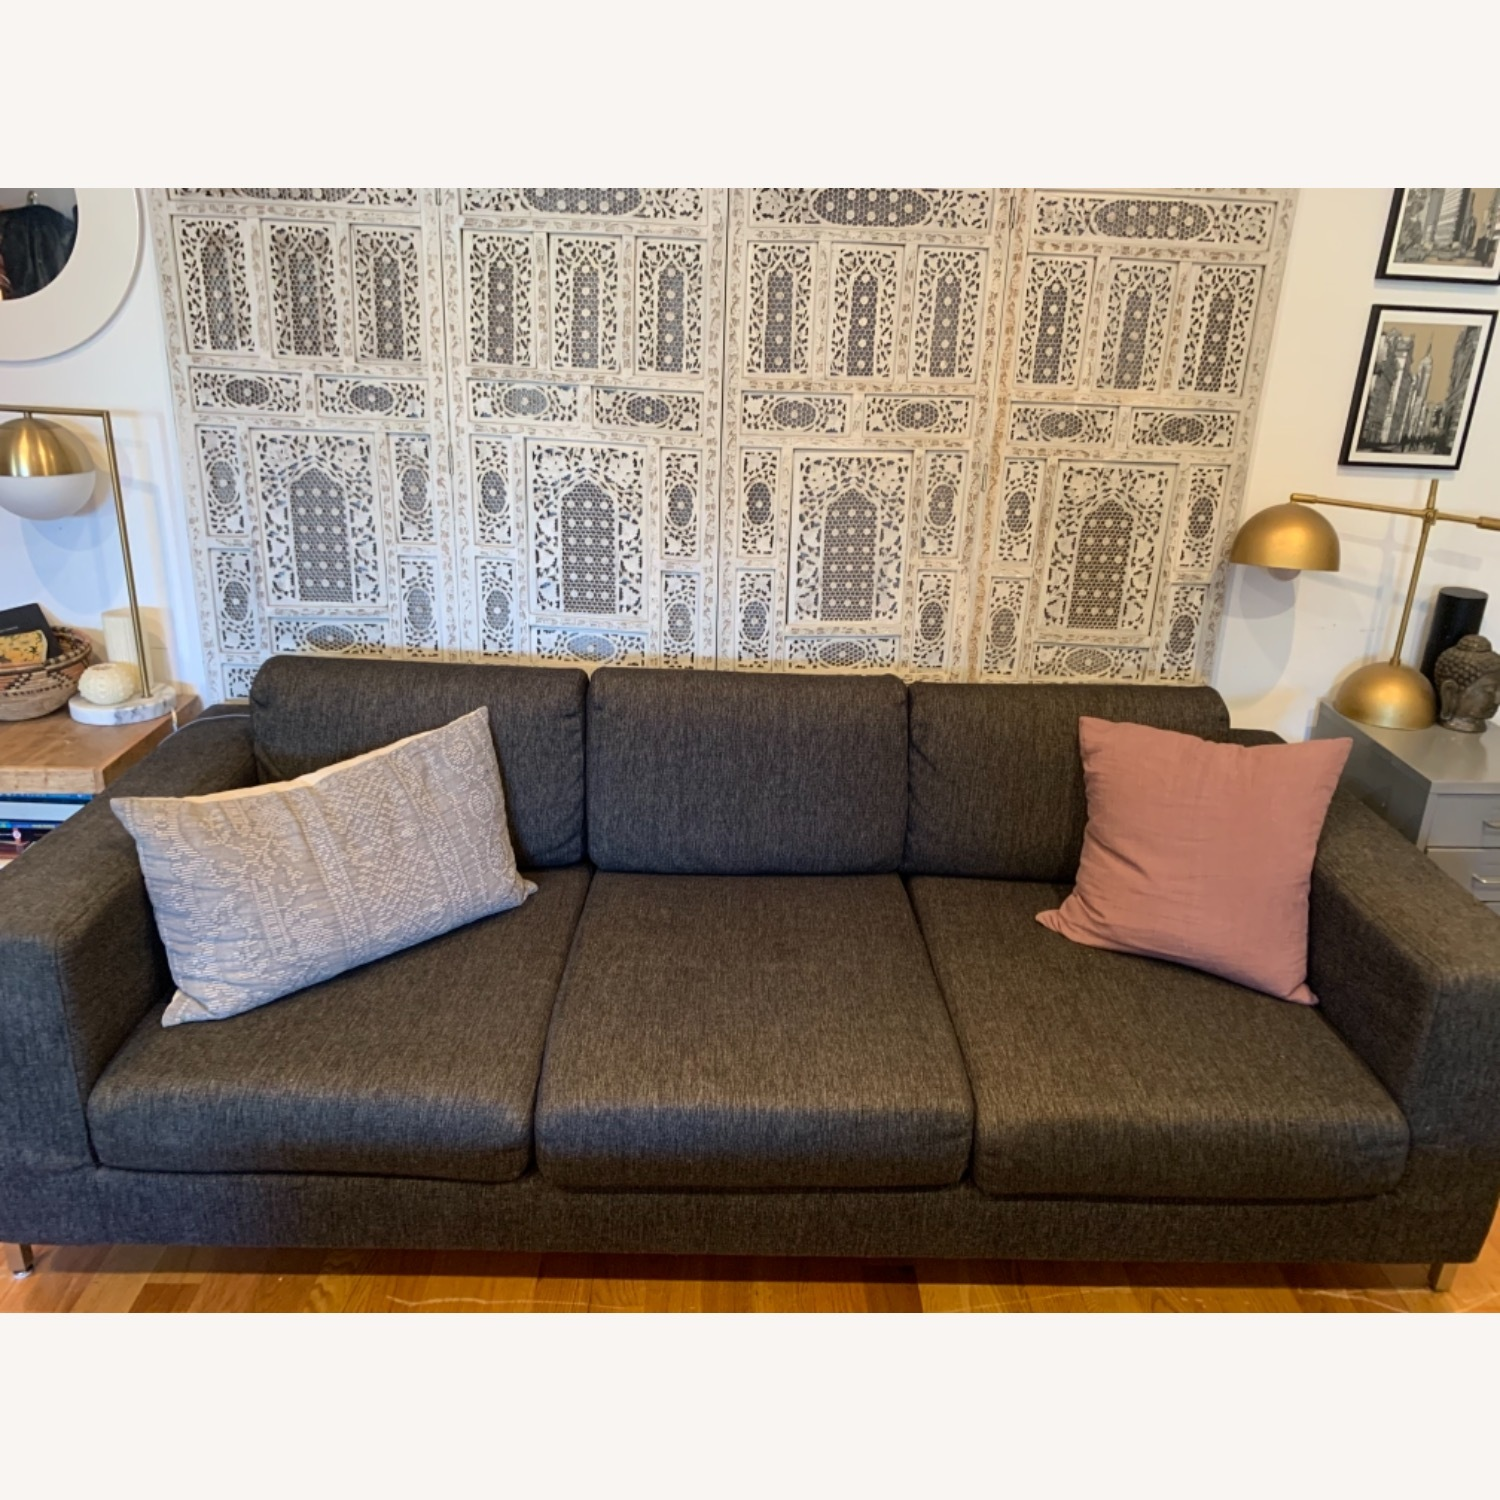 Gus Modern Gray Couch - image-7